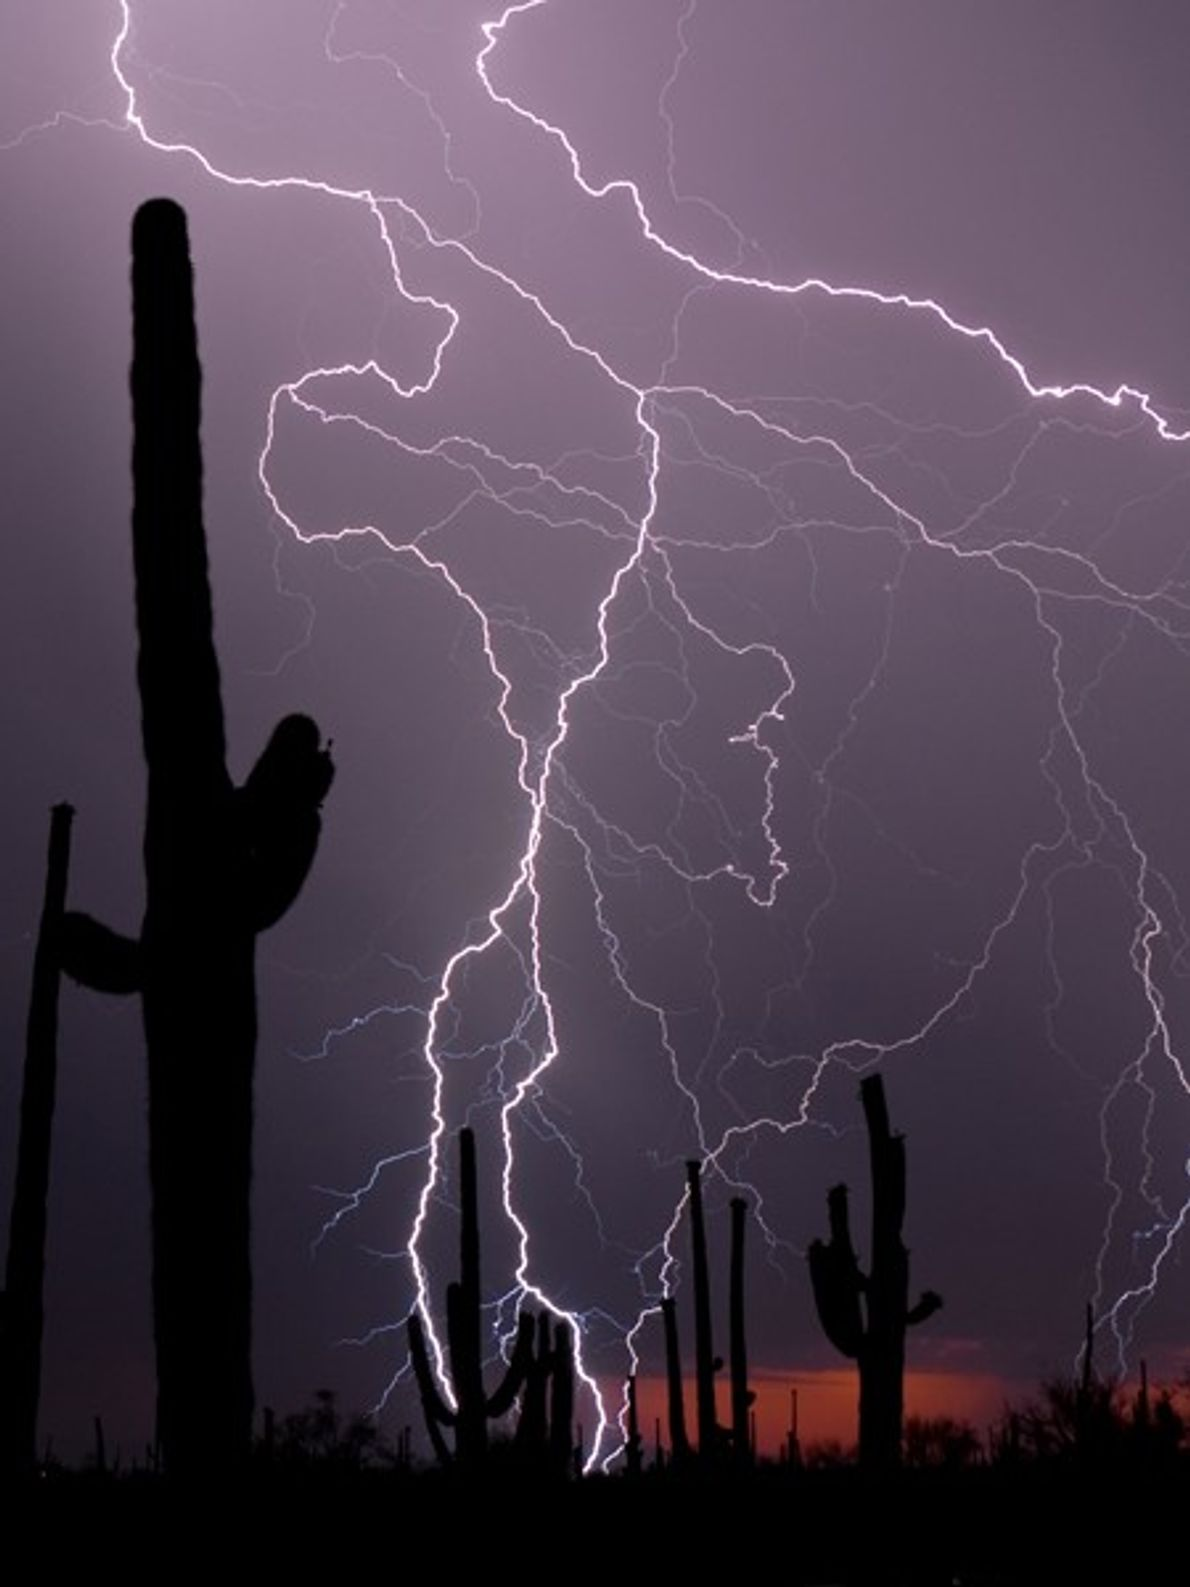 Saguaro cacti stand in the desert as a thunderstorm rolls overhead. Lightning in dry areas increases ...